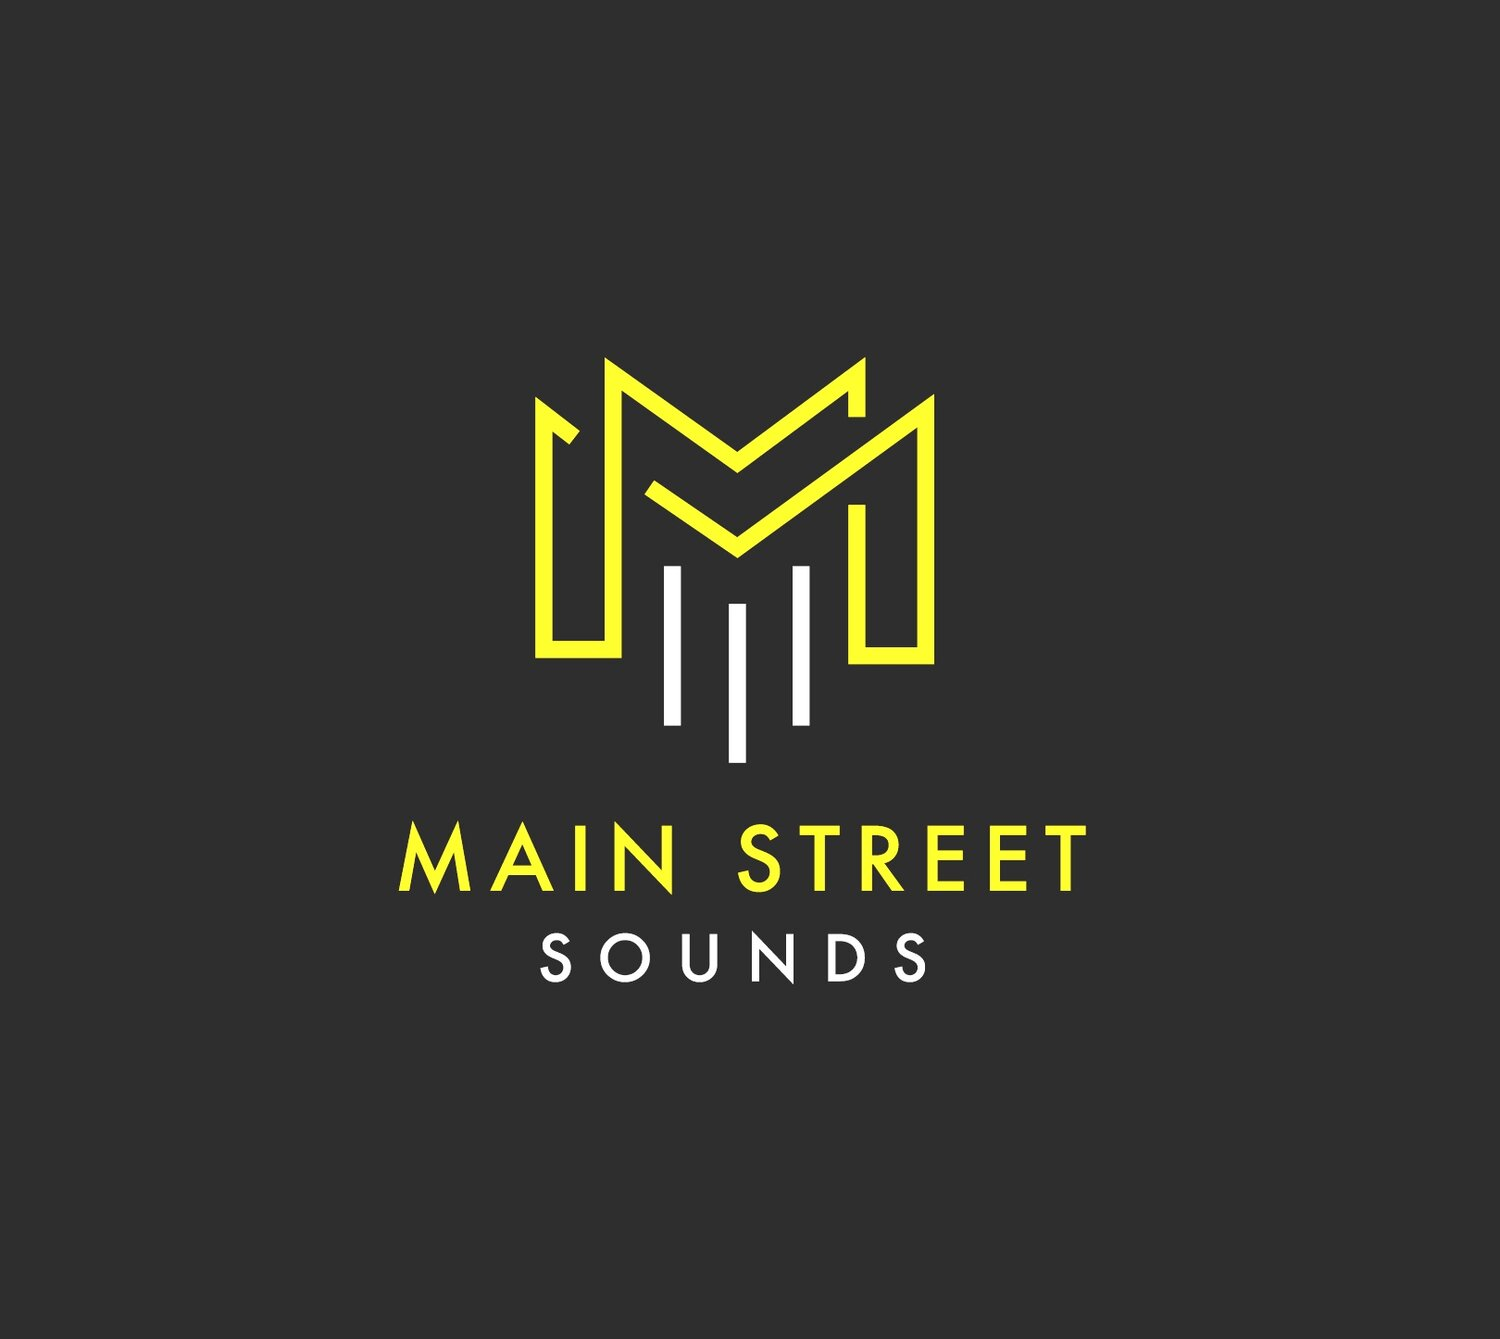 Main Street Sounds